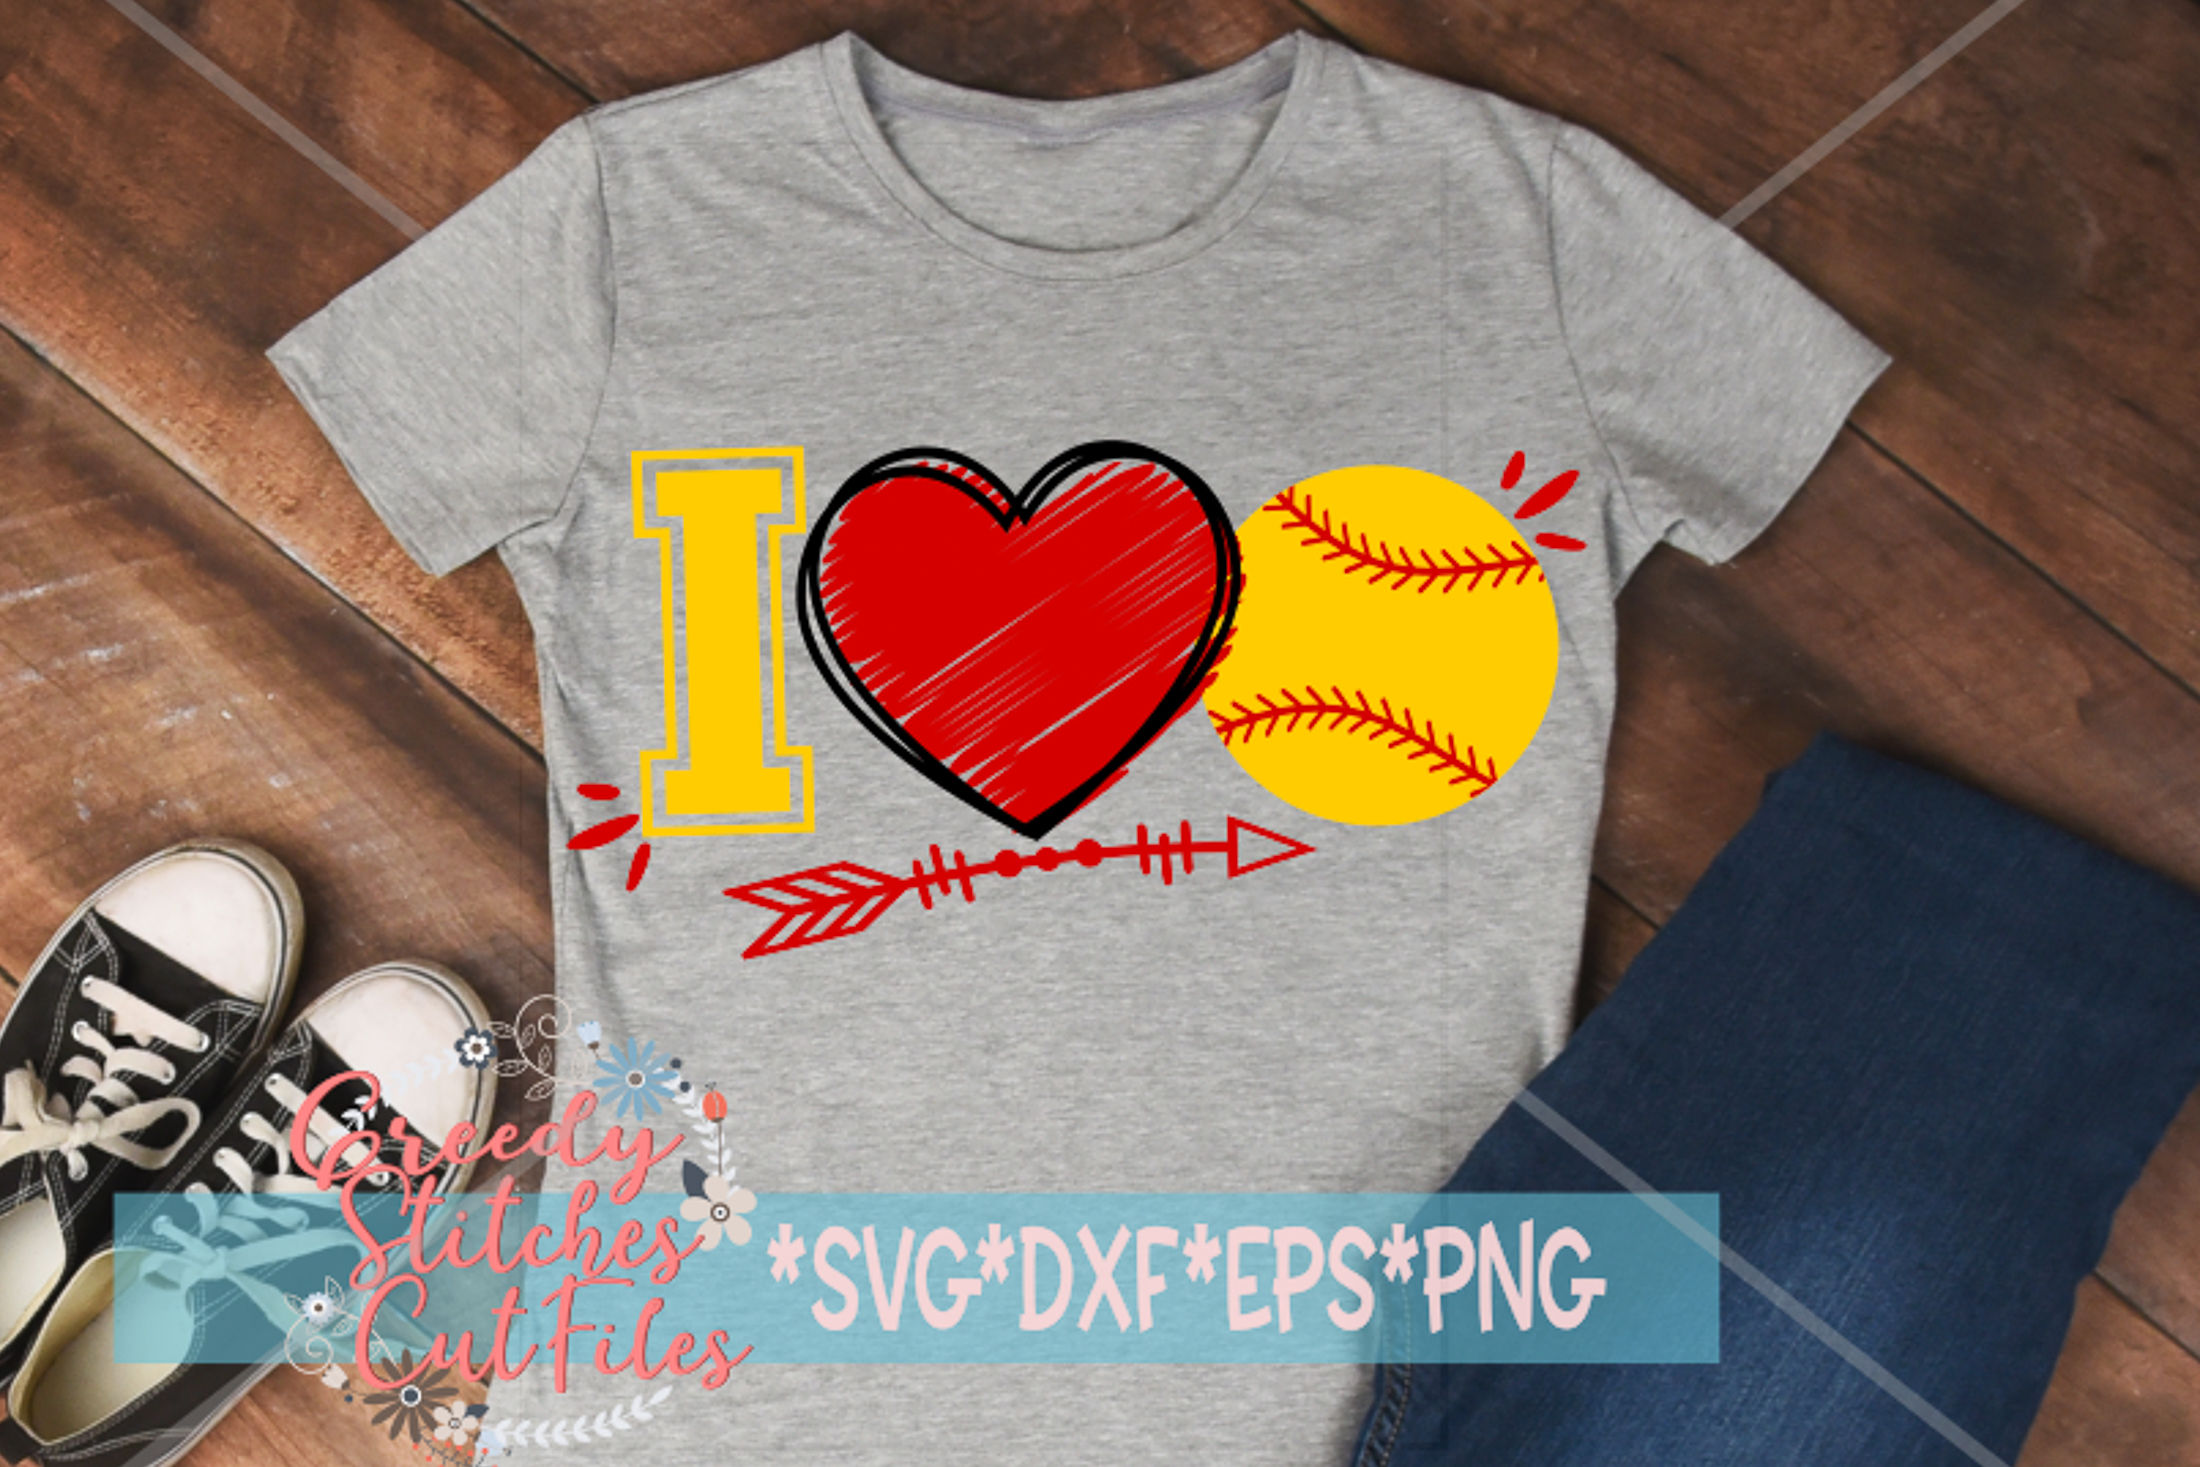 I Love Softball SVG, DXF, EPS, PNG Files example image 4